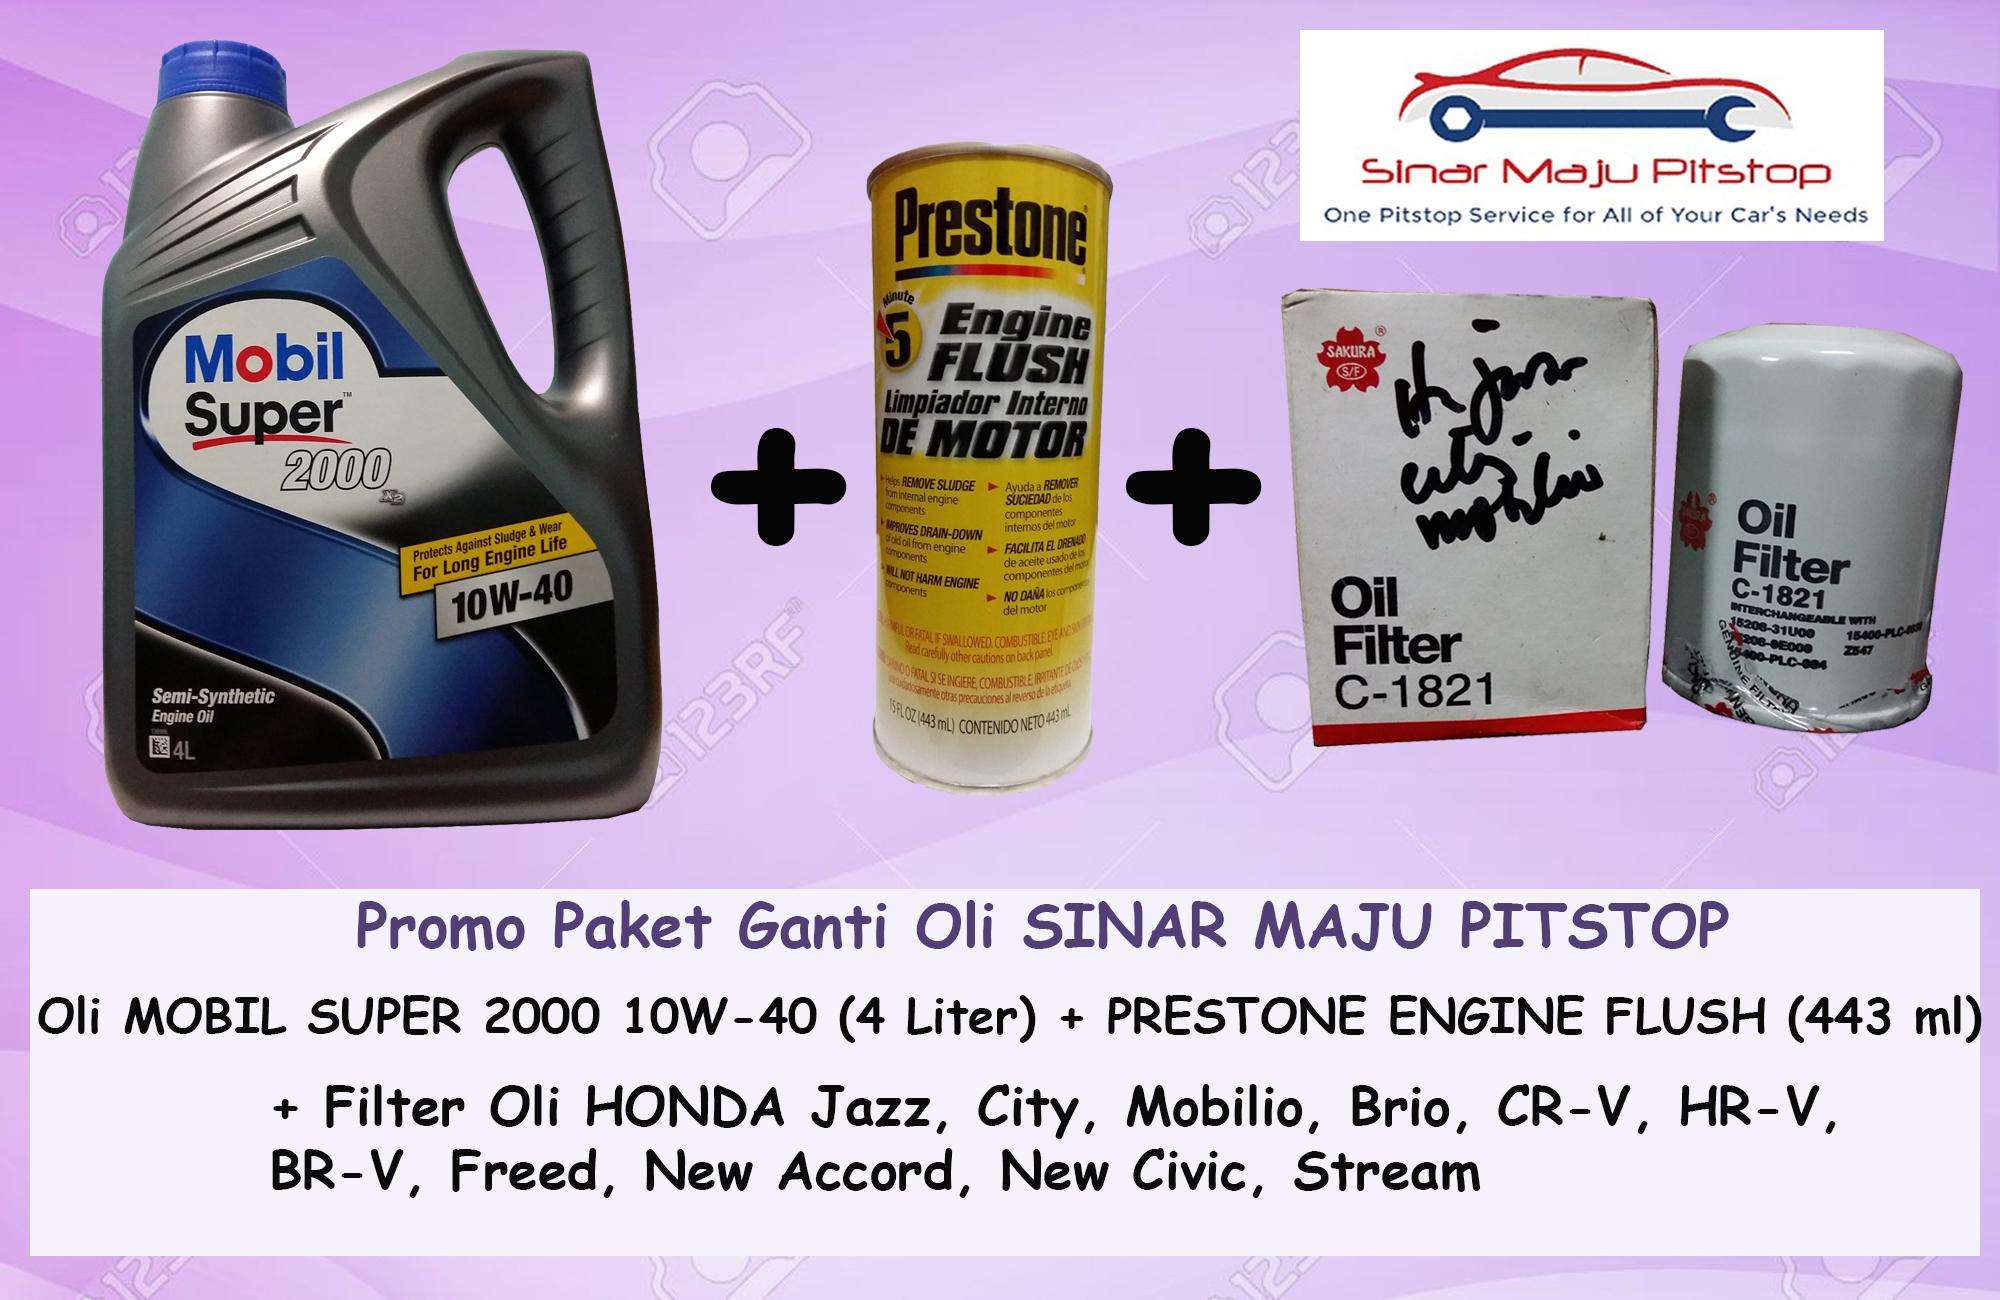 Promo Paket Ganti Oli MOBIL SUPER 2000 10W-40 API SN 4 LITER & Prestone Engine Flush & Filter Oli HONDA ALL NEW JAZZ RS ORIGINAL